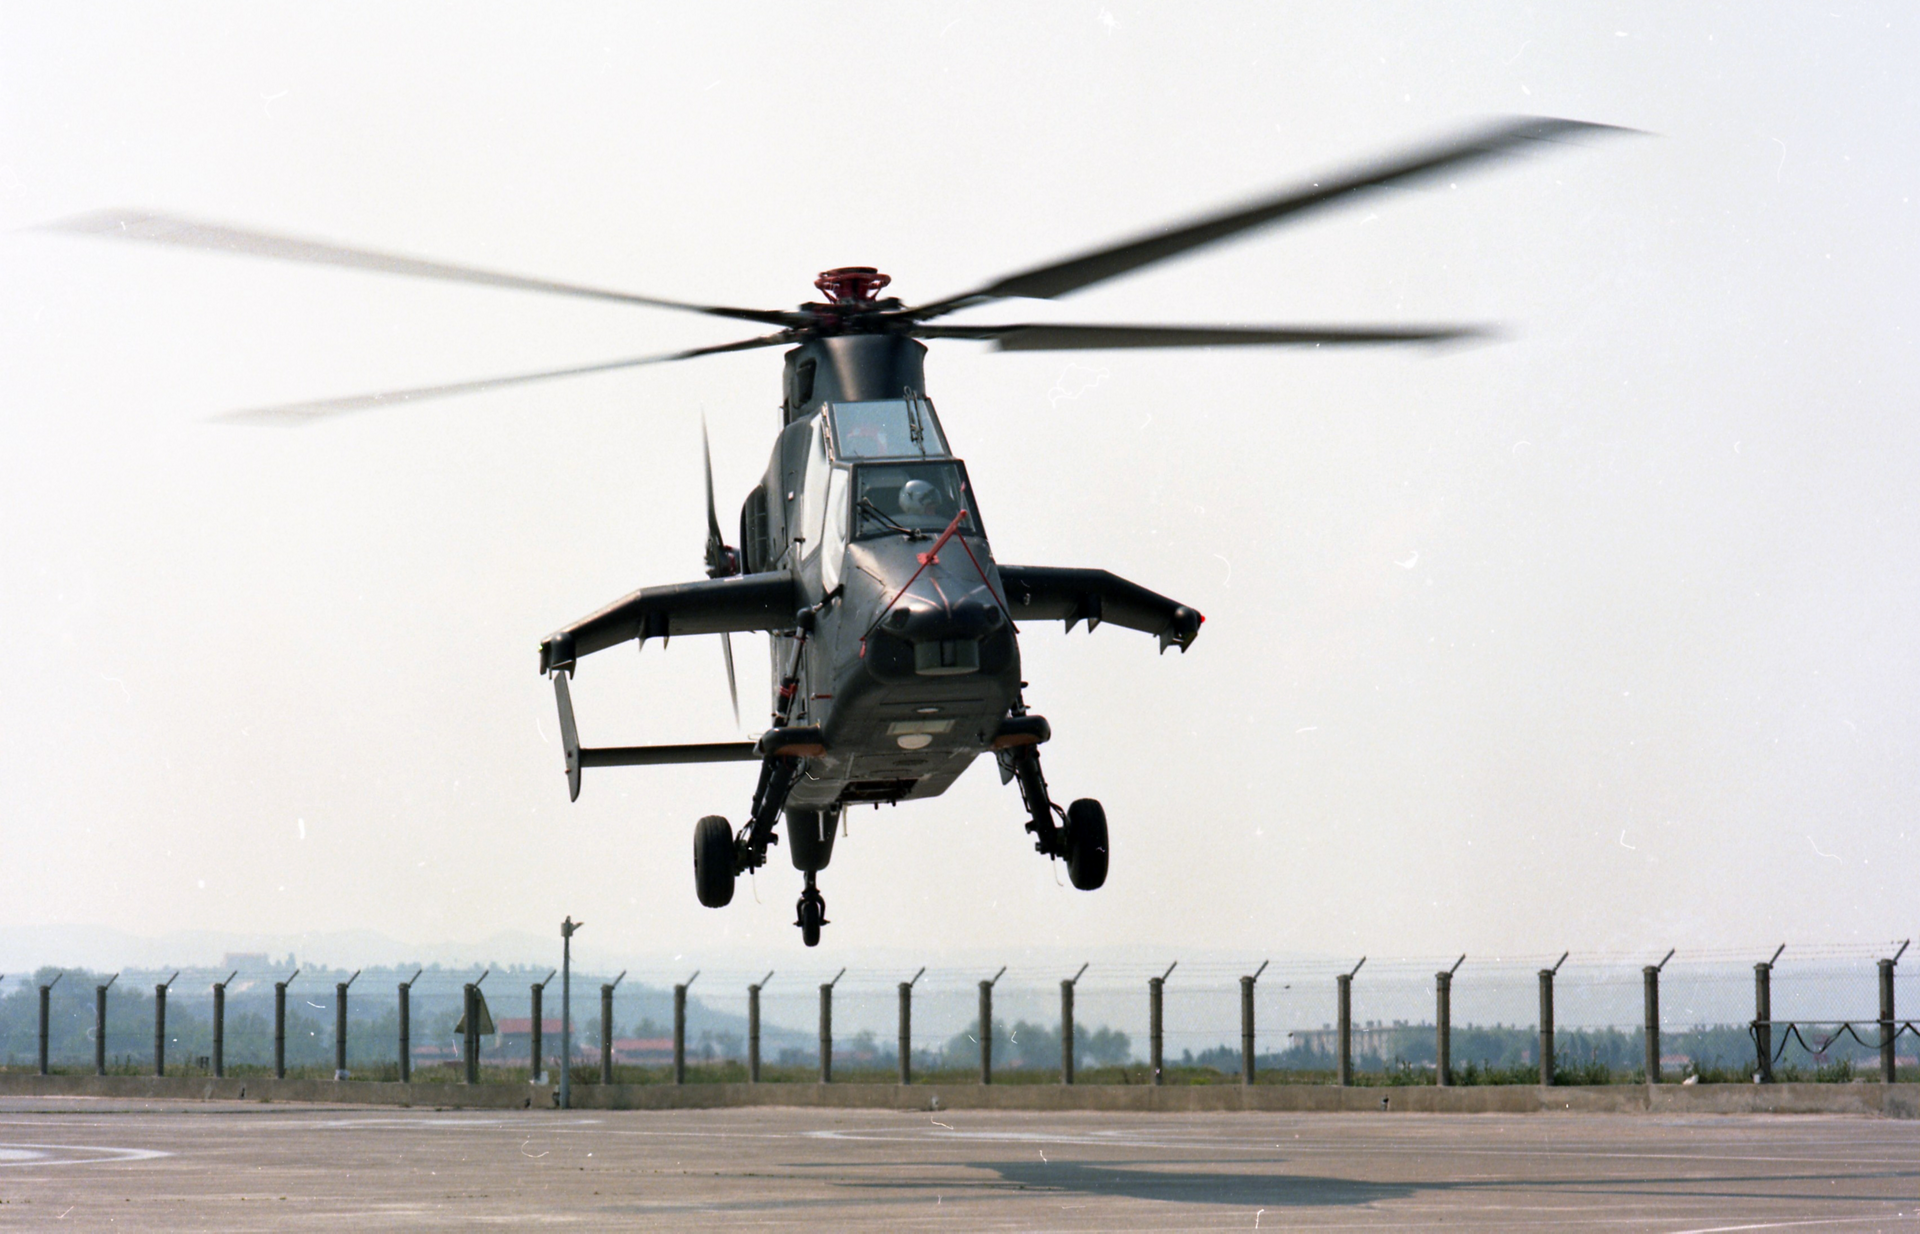 The Tiger combat helicopter ascends on its maiden flight.